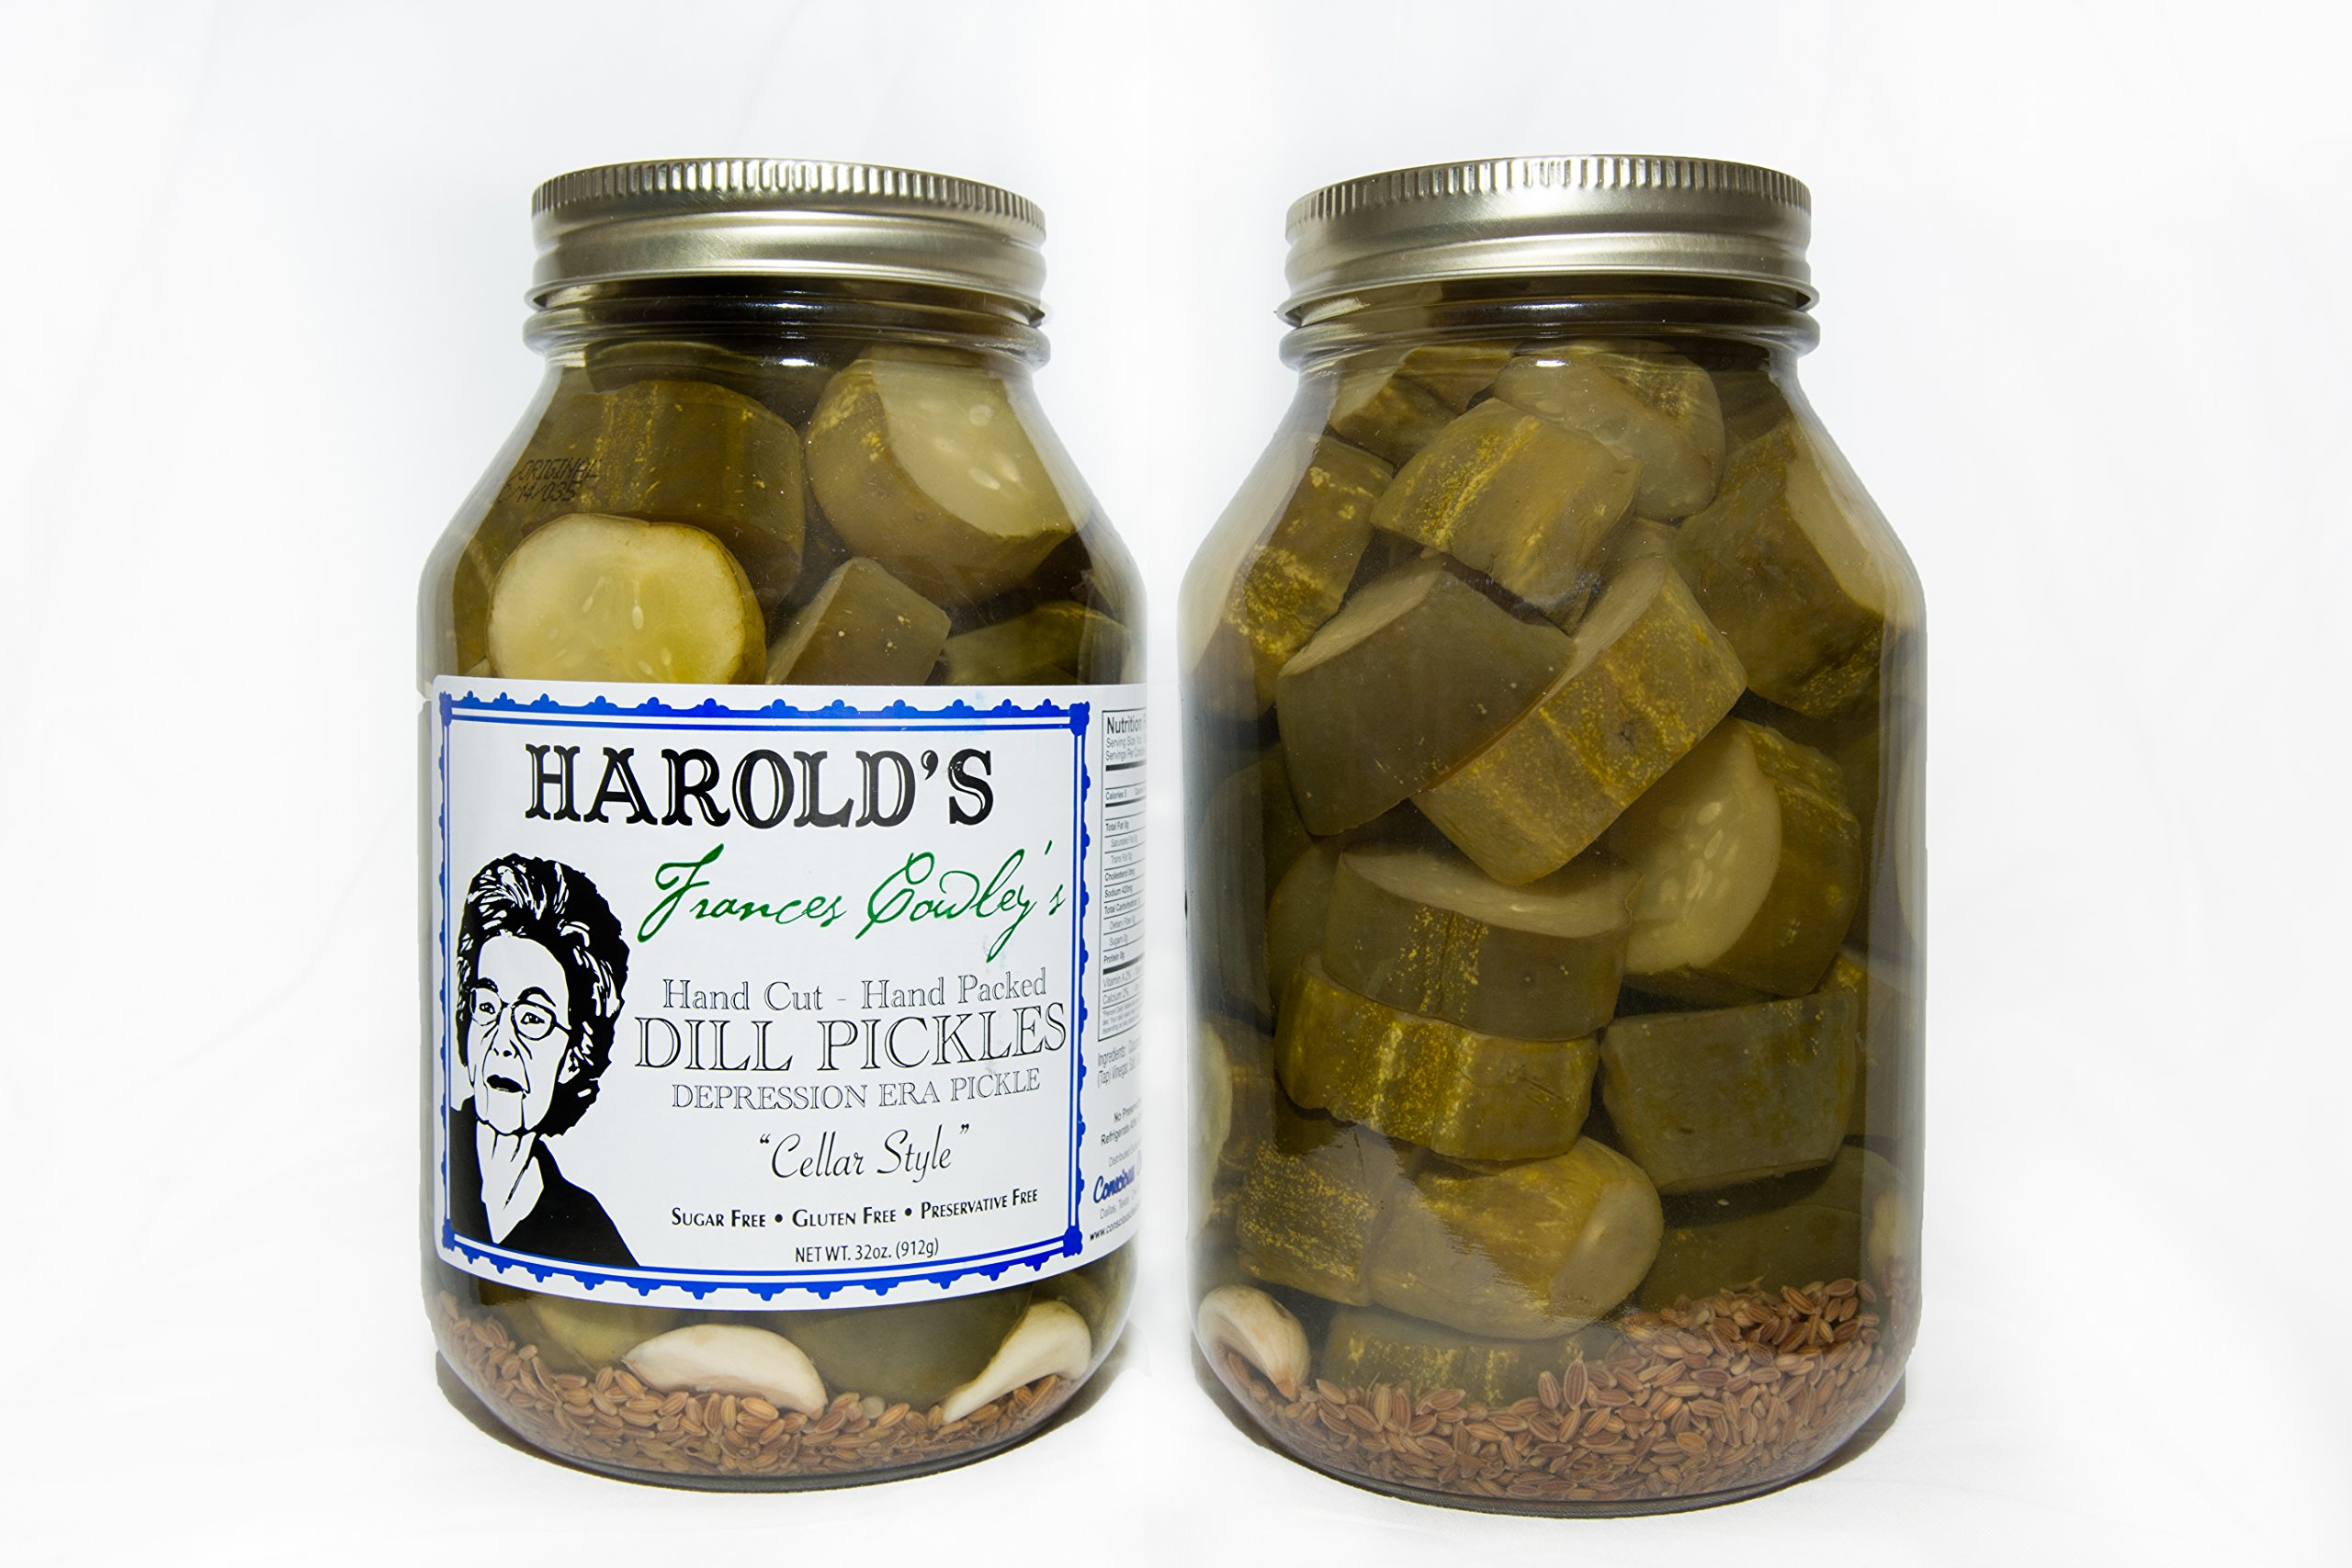 3-Pack Dill (1 each Frances, Harold 2X, Harold 4X) 3- 32oz quarts